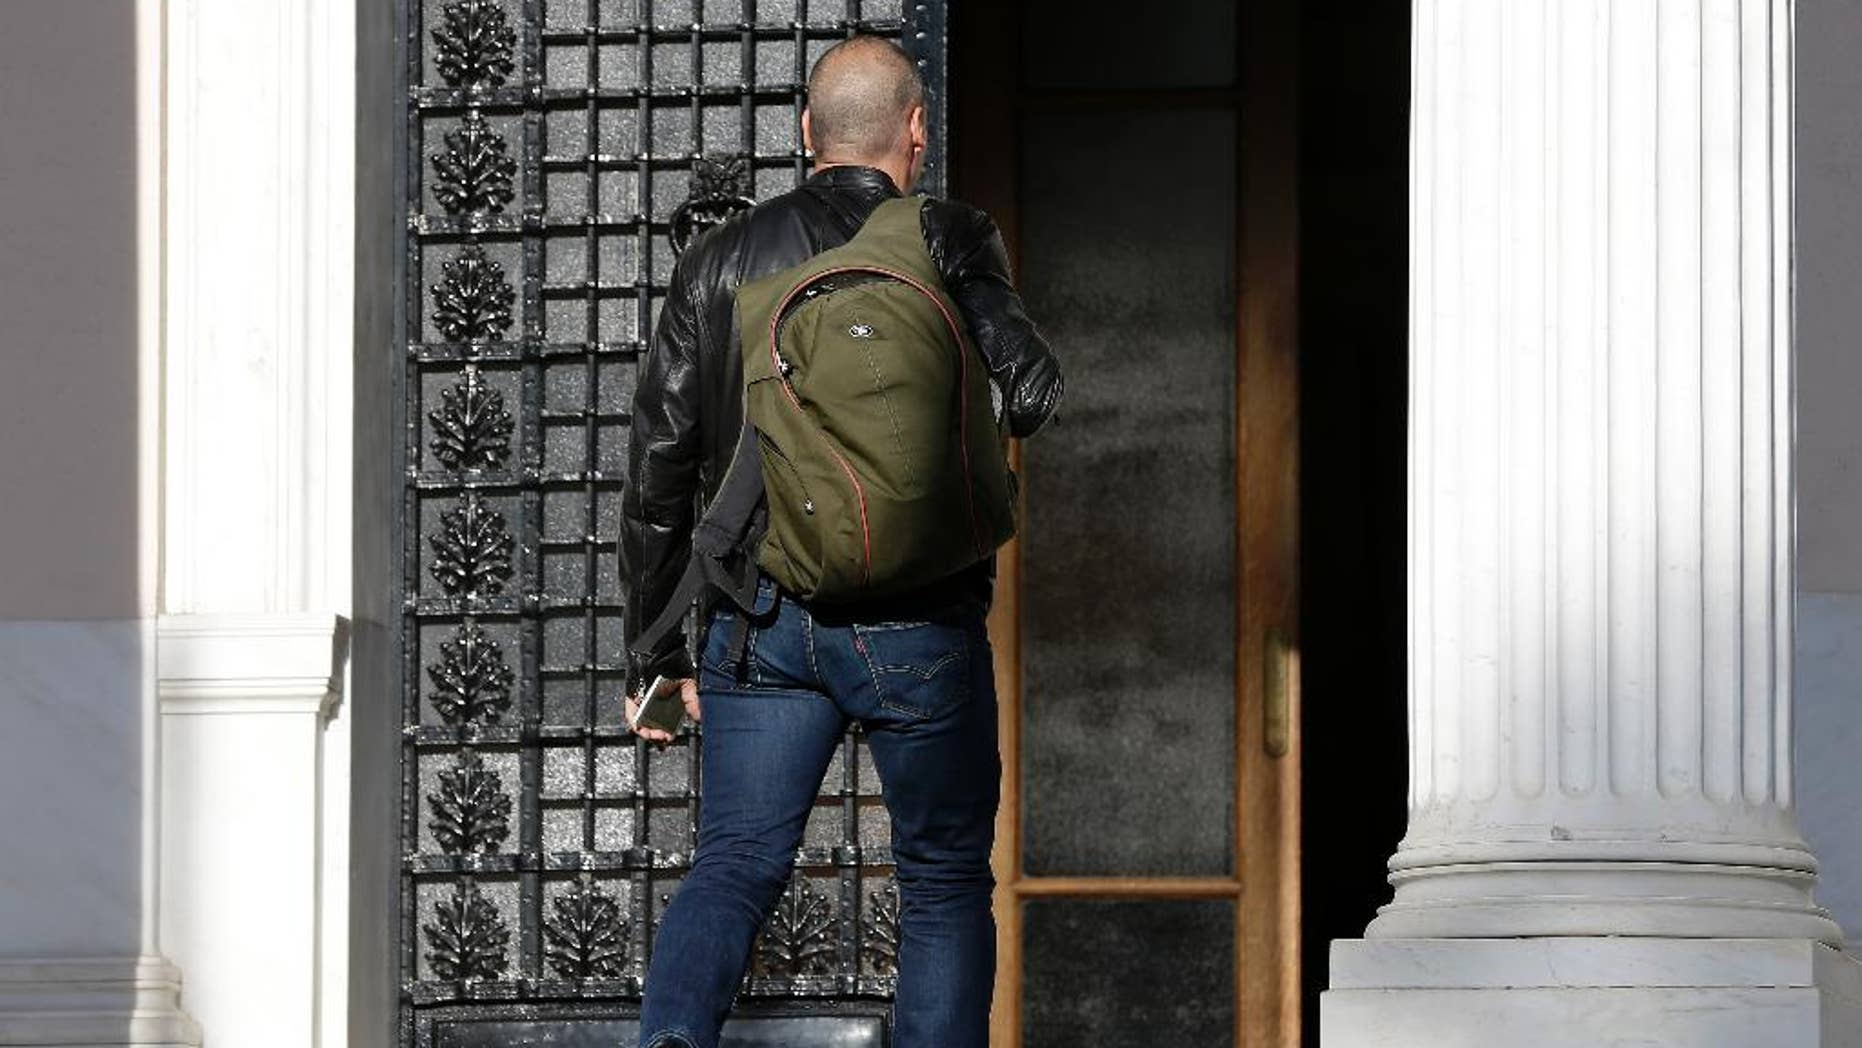 Greece's Finance Minister Yanis Varoufakis arrives for a ministerial meeting at Maximos Mansion in Athens, Wednesday, May 13, 2015. Greece's prime minister Alexis Tsipras was holding his second ministerial meeting in as many days Wednesday, when official data confirmed the cash-strapped country is back in recession amid concern over much-delayed bailout talks with creditors. (AP Photo/Thanassis Stavrakis)